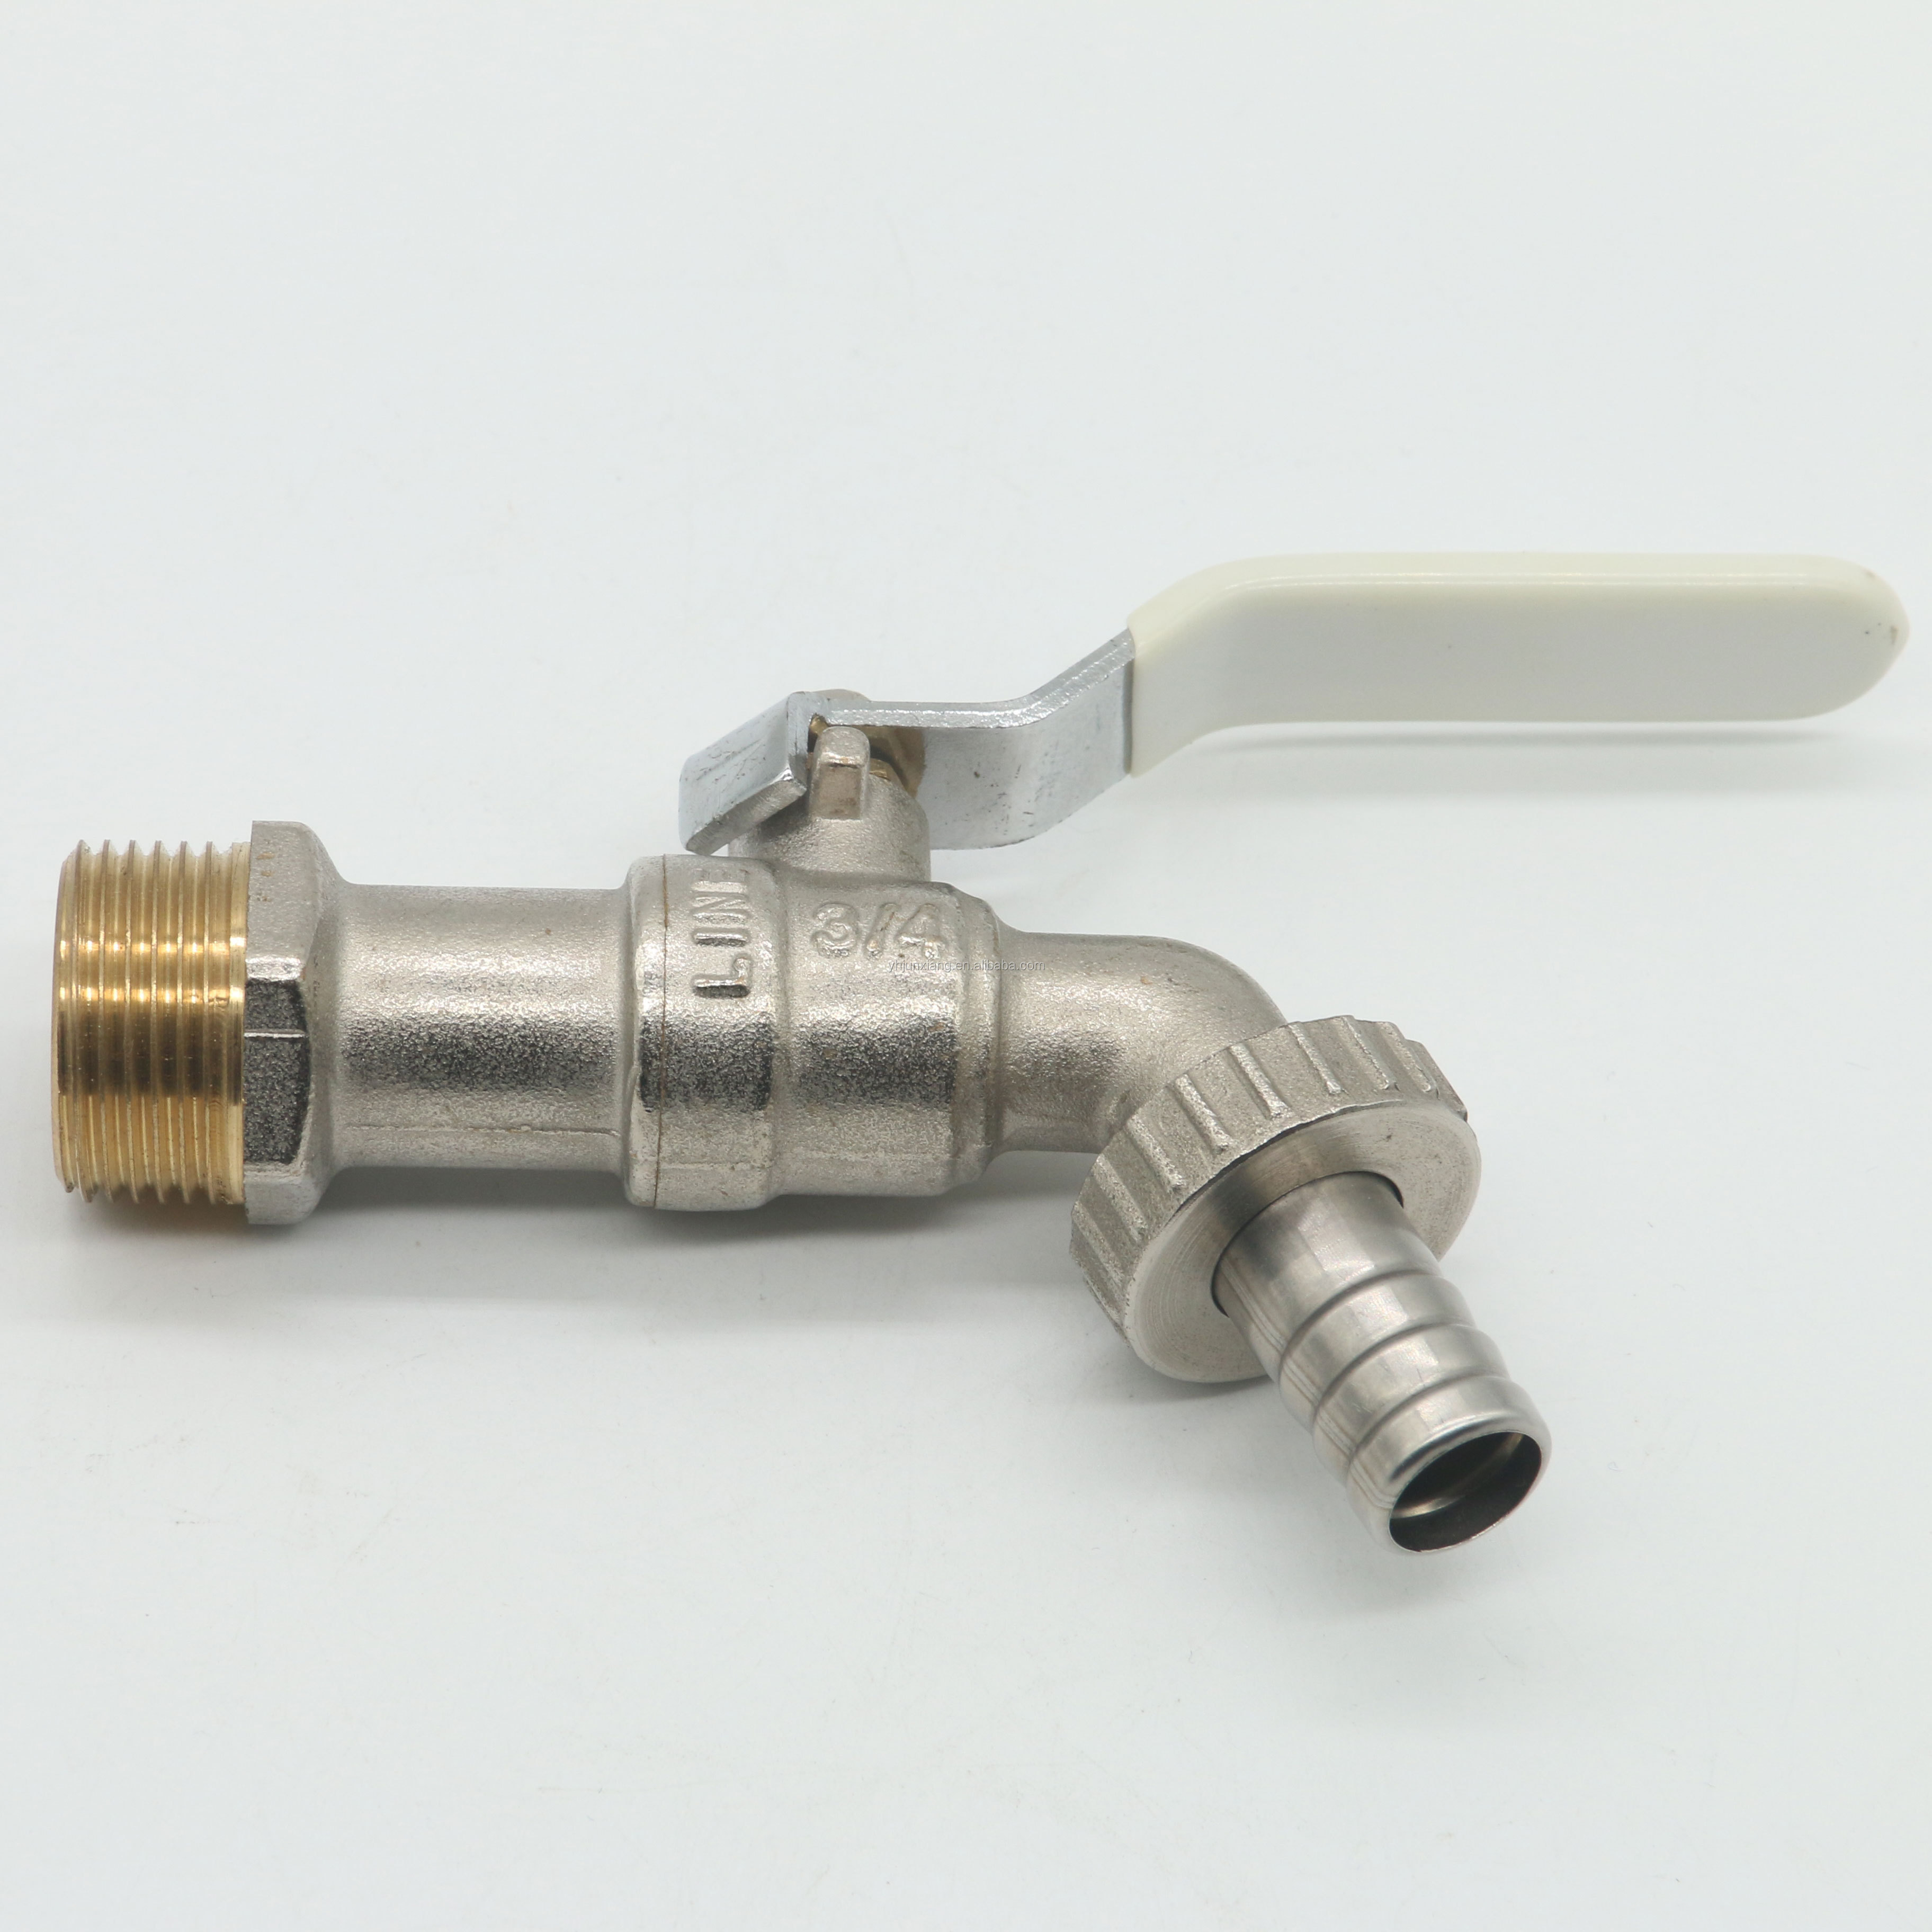 High Quality Brass Nickel Plated Ball Bathroom Water 1/2 Inch Bibcock Taps